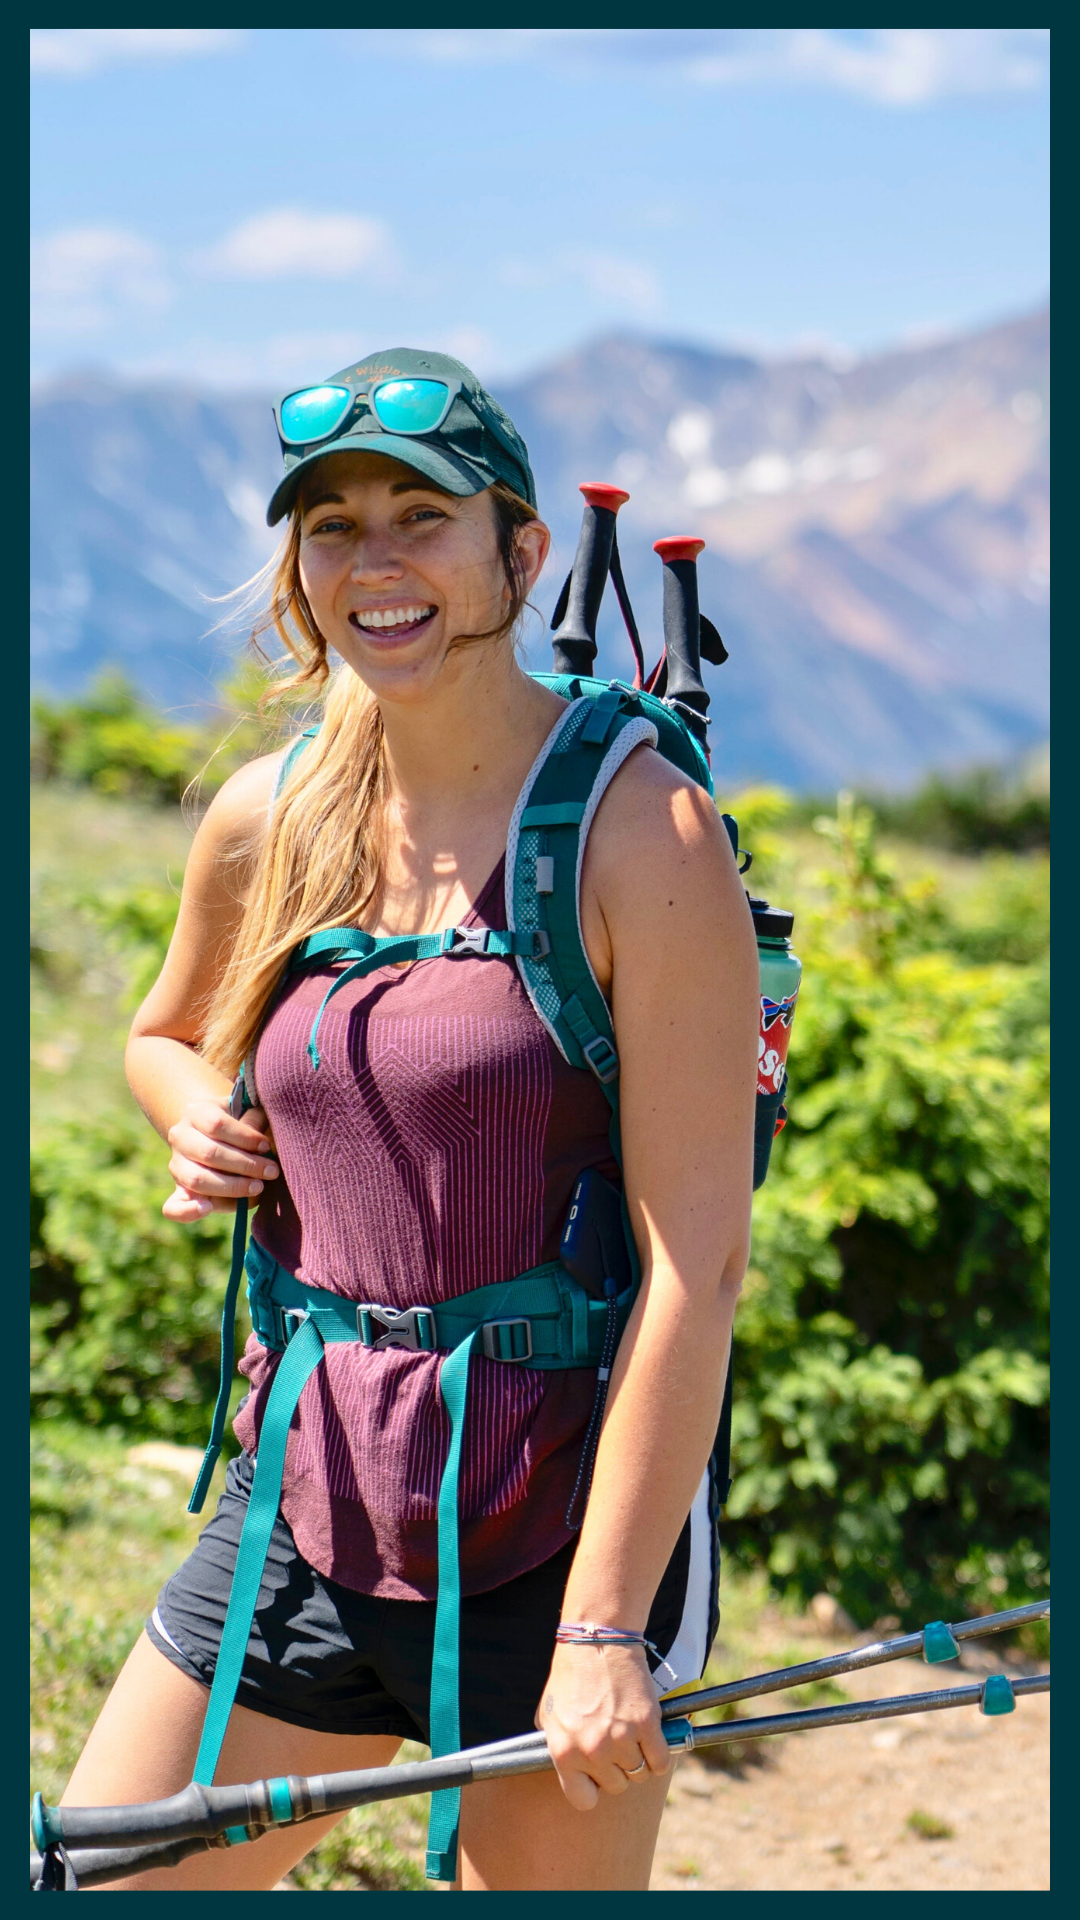 Hey there! I'm Allison - I'm an outdoor backpacking coach for women who are ready to kick their crippling fears to the curb, and step into a newer, more confident, self-sufficient, & strong identity through backpacking outdoors.I personally believe that learning the skill of outdoor backpacking will have a ripple affect of confidence into the rest of your life.And soon, there will be no adventure too big or to grand for you. You'll have the skills, mental training, and strength to take on all of your biggest dreams.Ready to get started?.Click below to be the first to know when my one-of-a-kind backpacking program re-opens for enrollment (January 2020)!